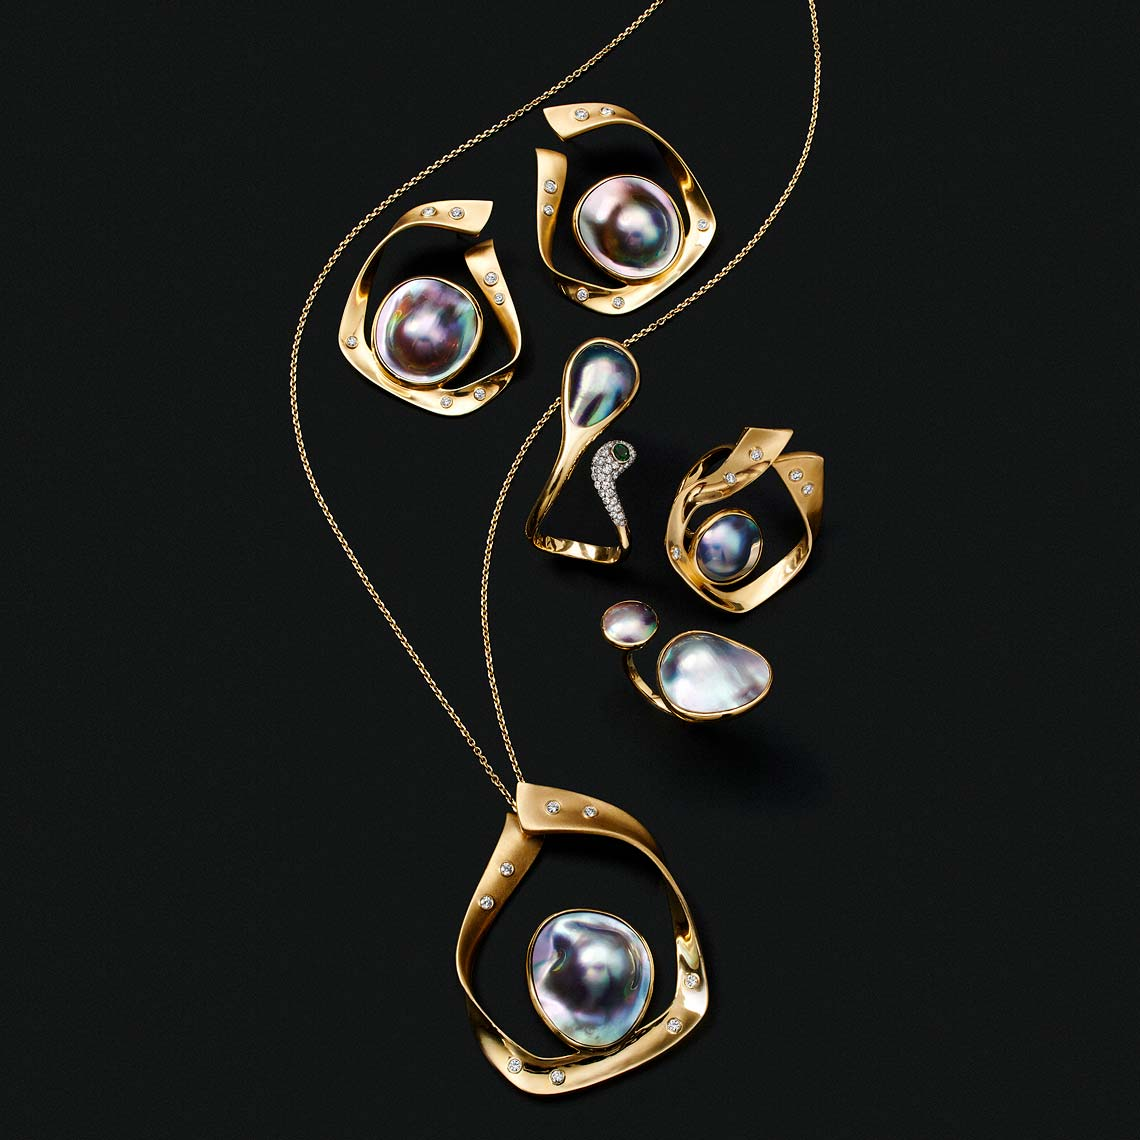 Jeff Stephens Jewelry Photography | Designer Jewelry